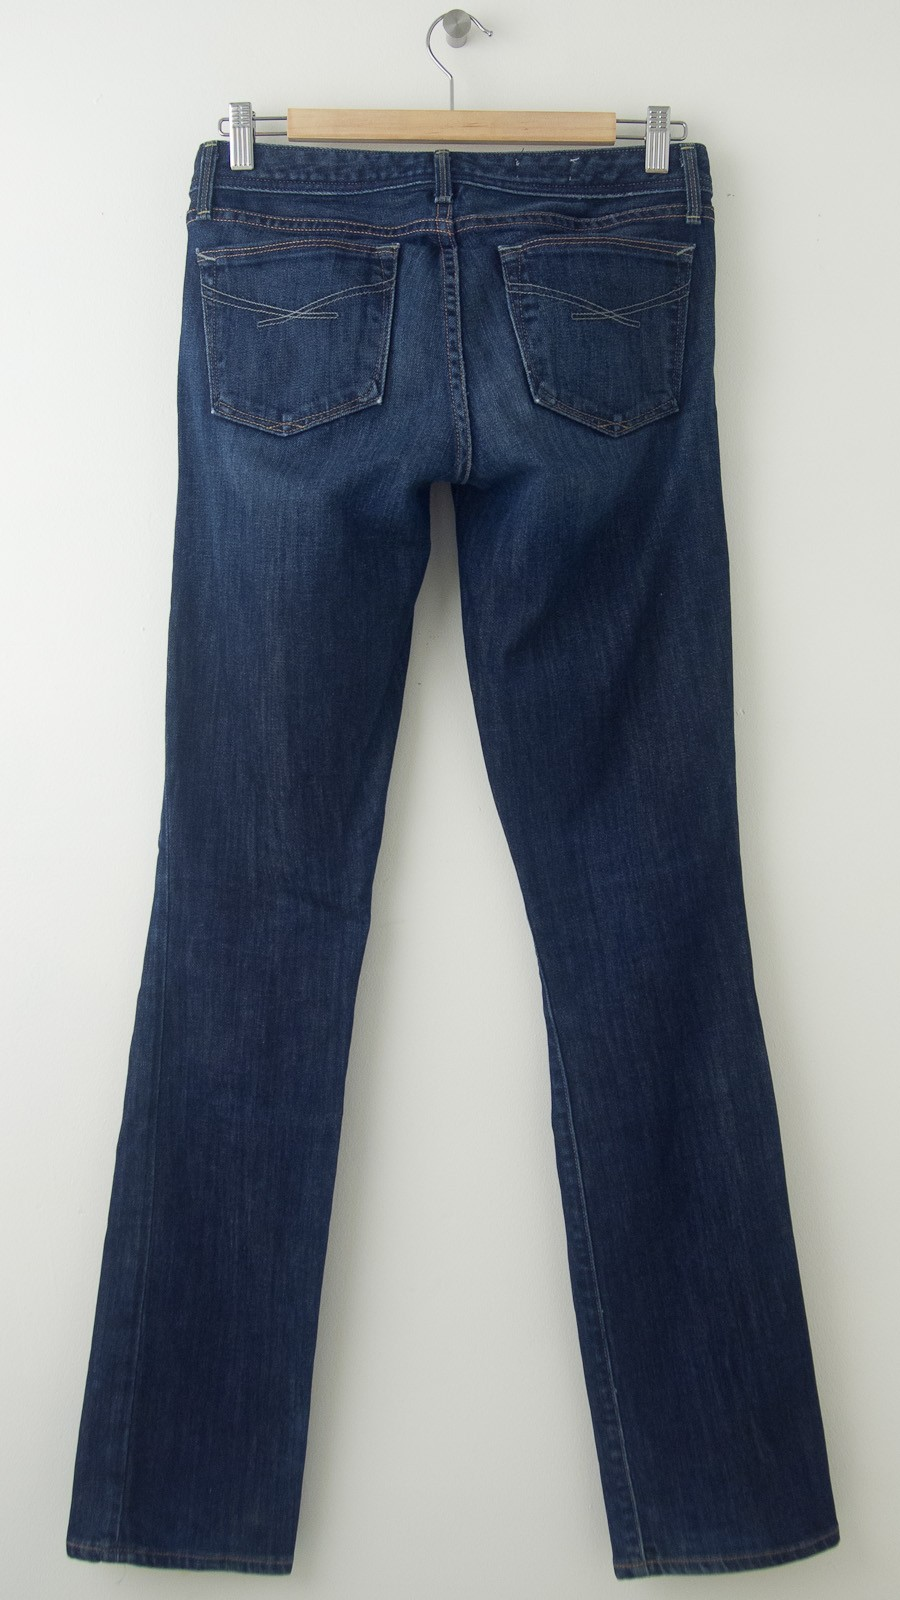 Gap 1969 Real Straight Jeans Women S 25 0